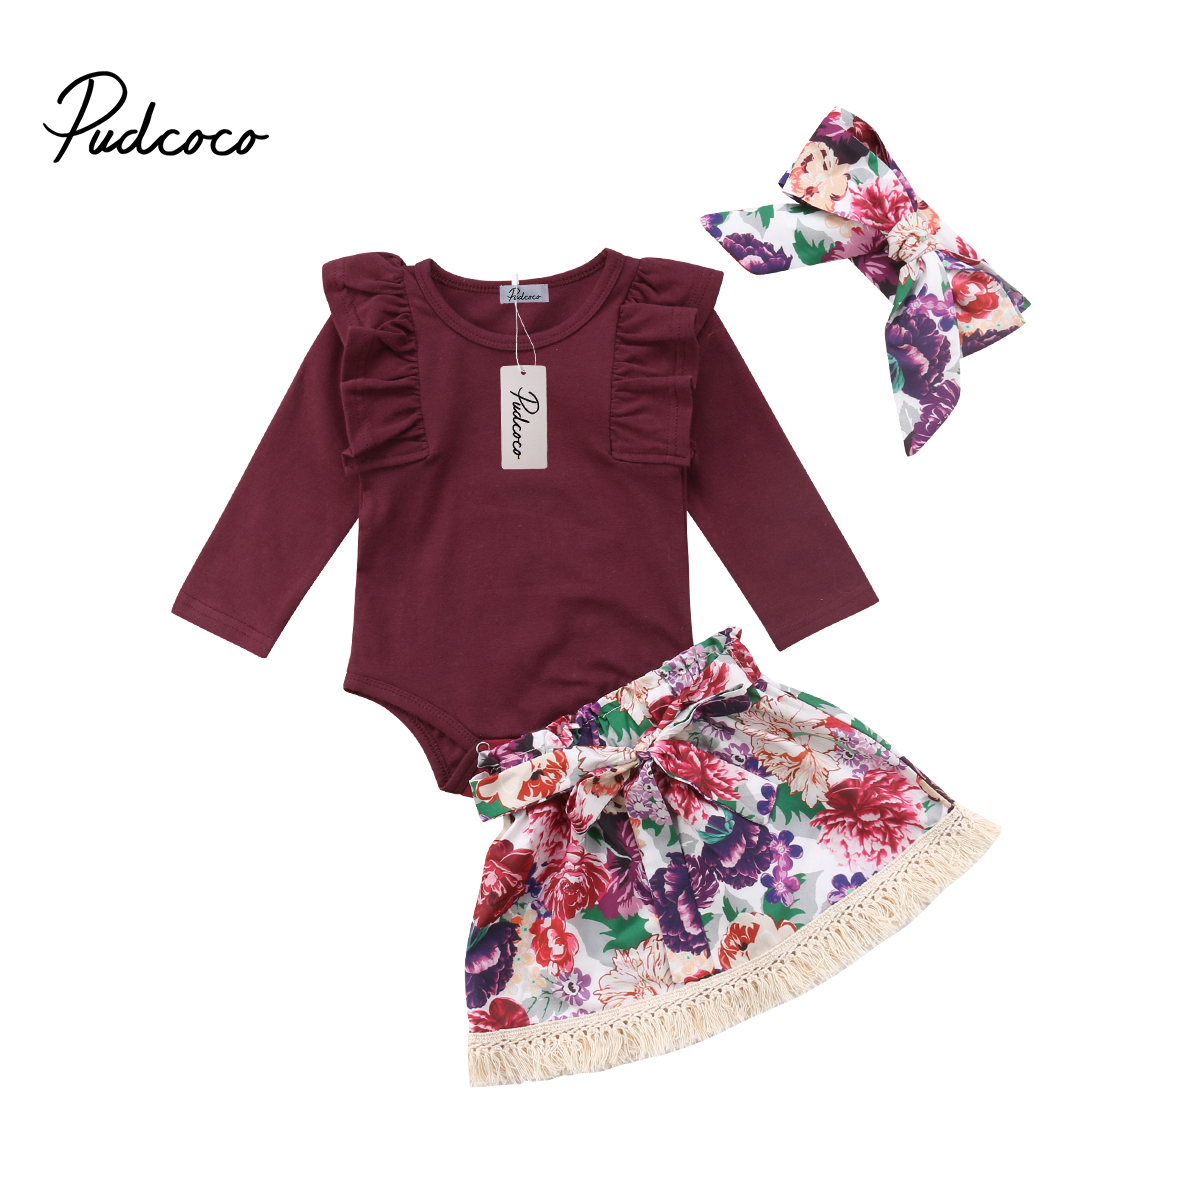 487b6359219f9 US $3.56 19% OFF|2018 Brand New 0 24M Newborn Infant Baby Girls Clothes  Sets 3PCS Ruffles Solid Long Sleeve Romper Tops Floral Skirts+Headband-in  ...